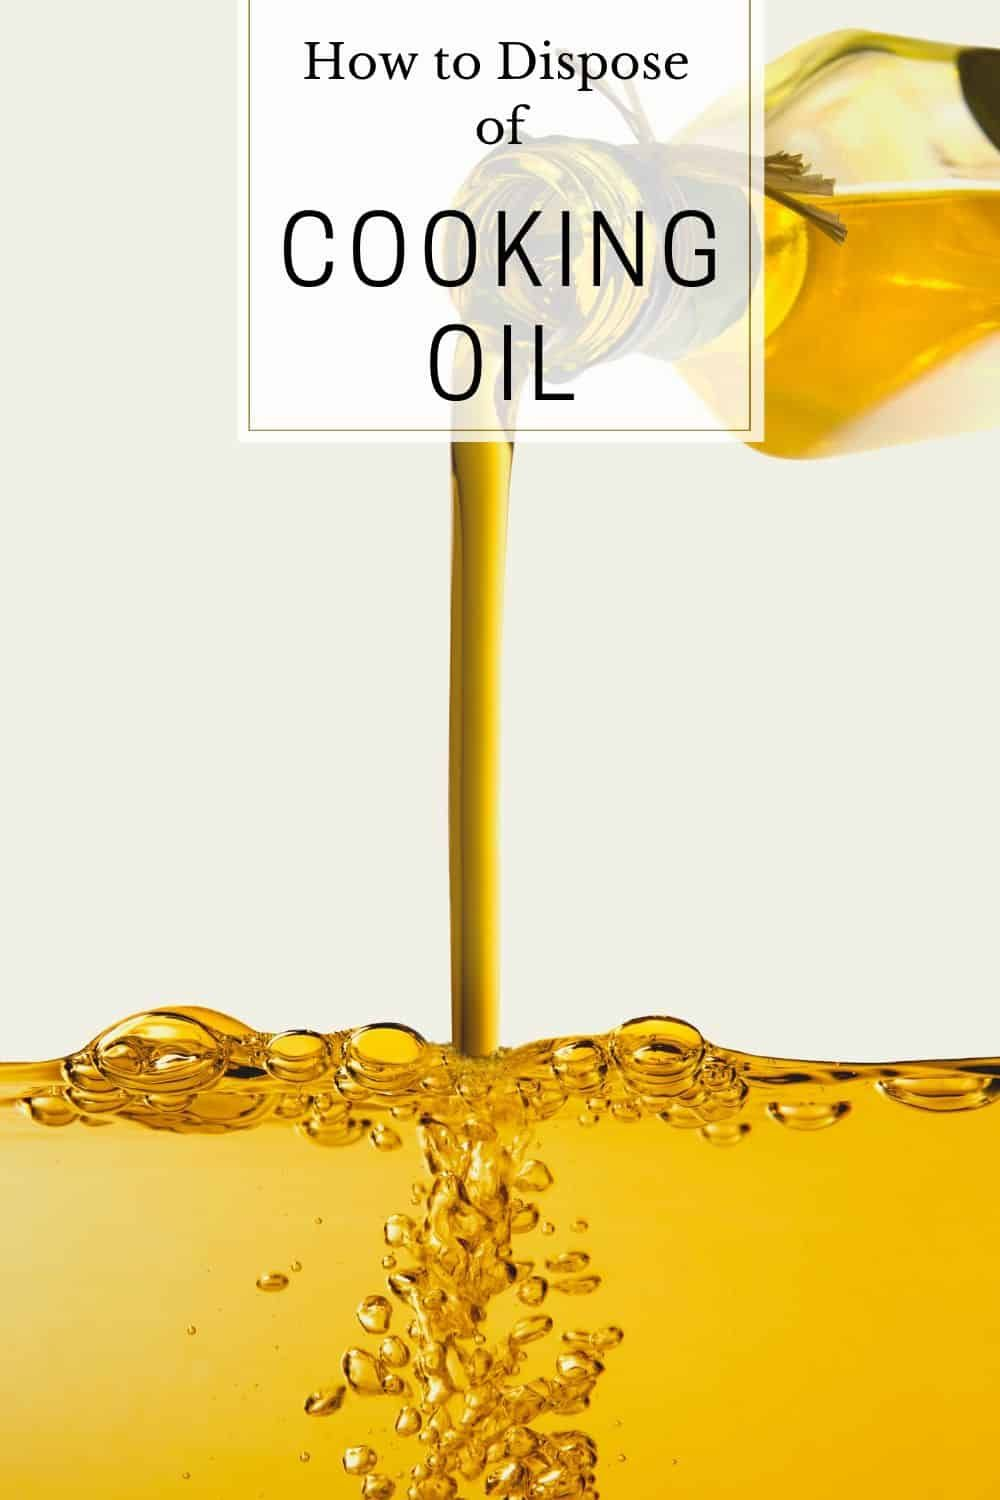 How to dispose of cooking oil the right way in 2020